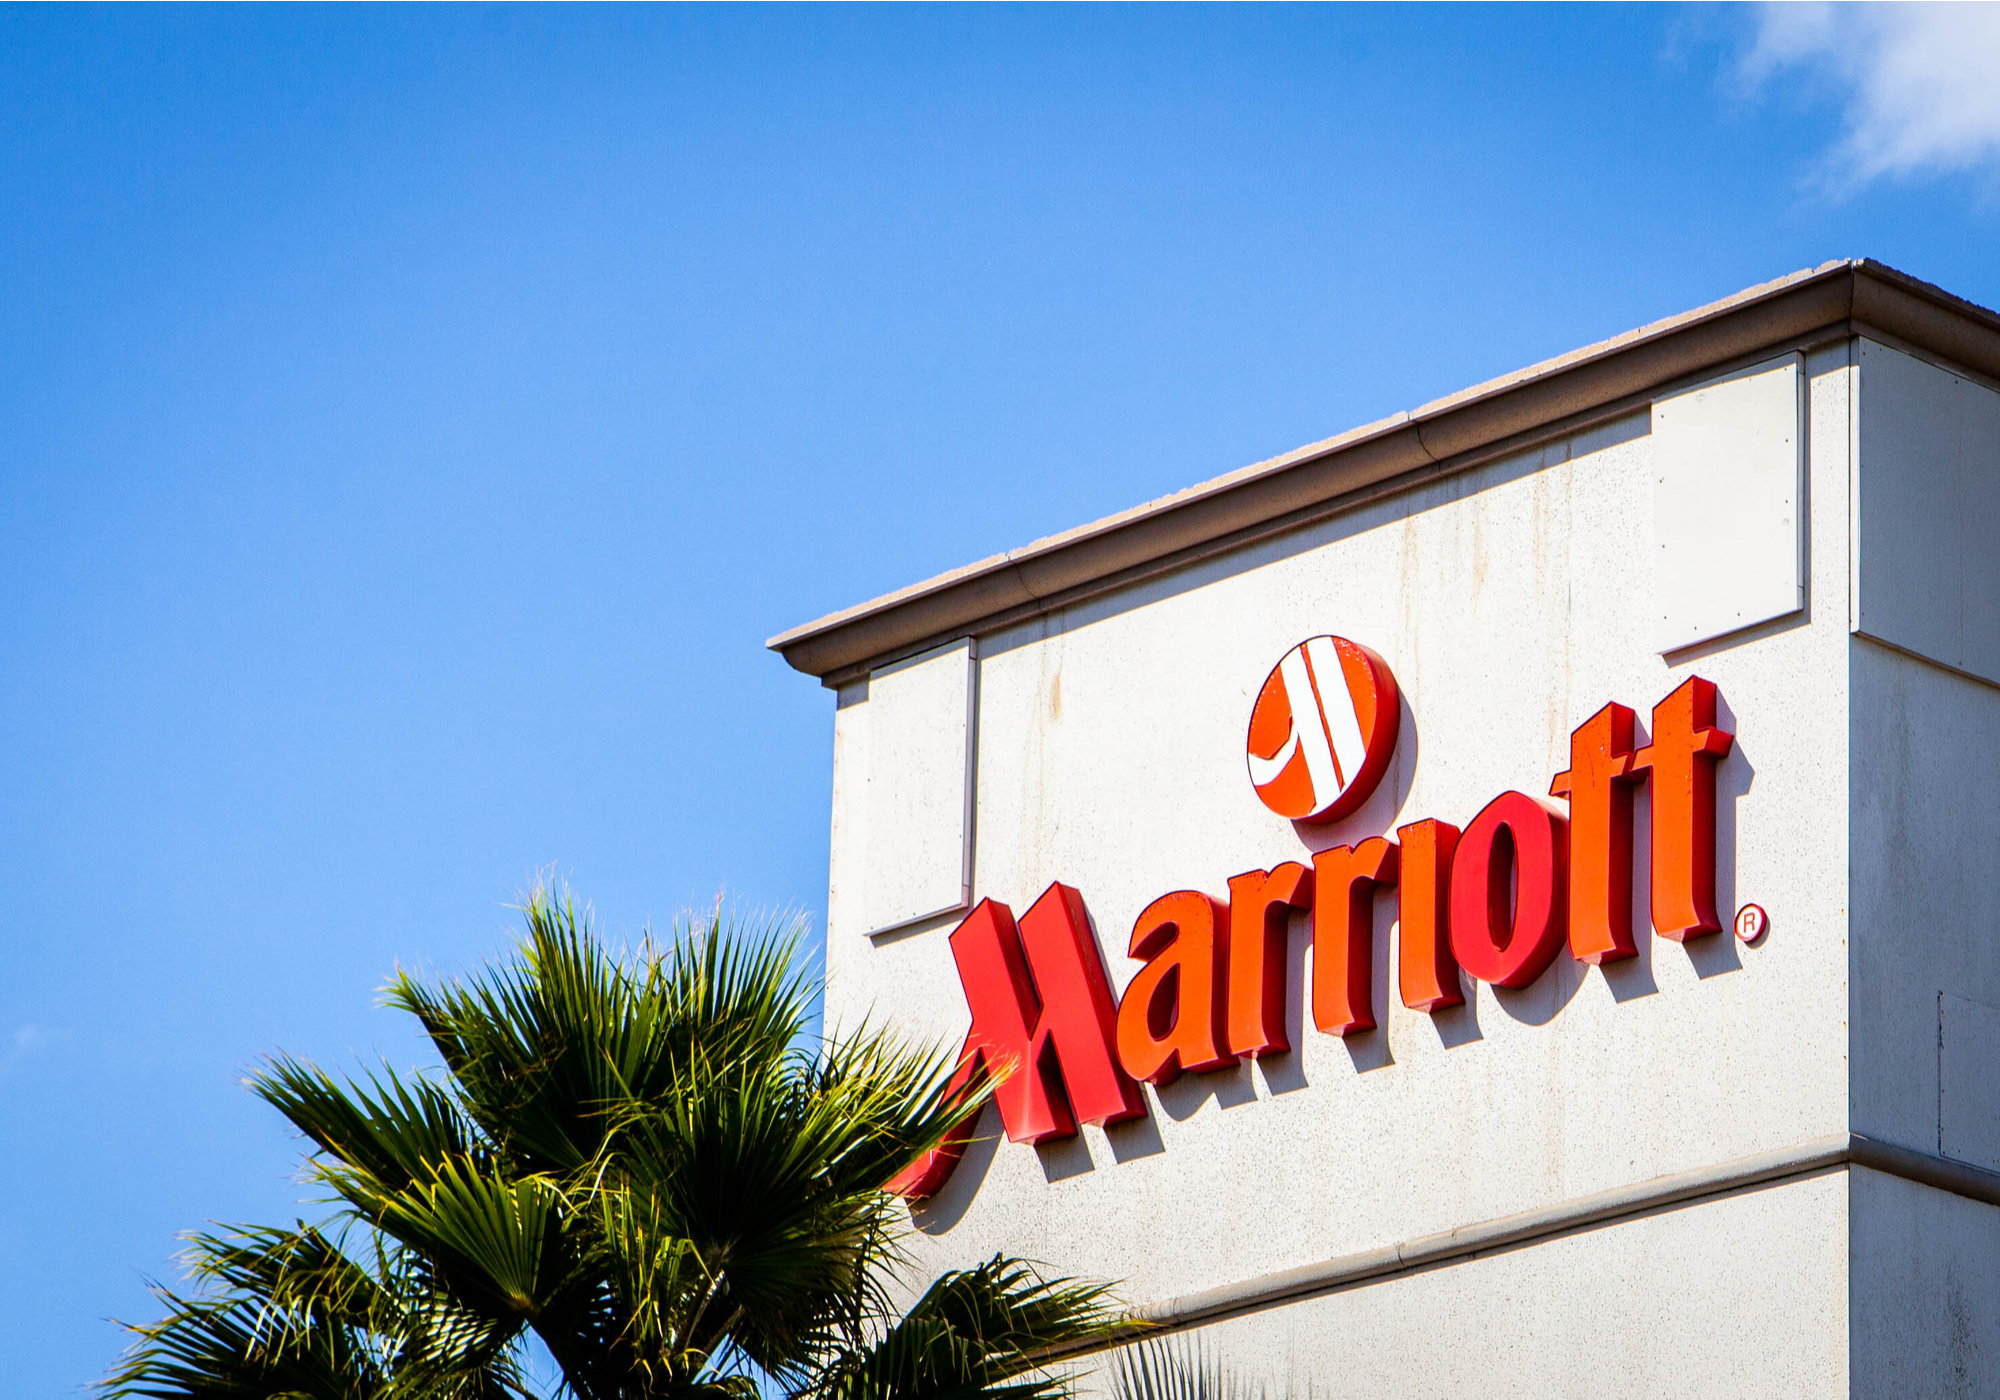 Marriott faces fresh data breach woes as London lawsuit launched